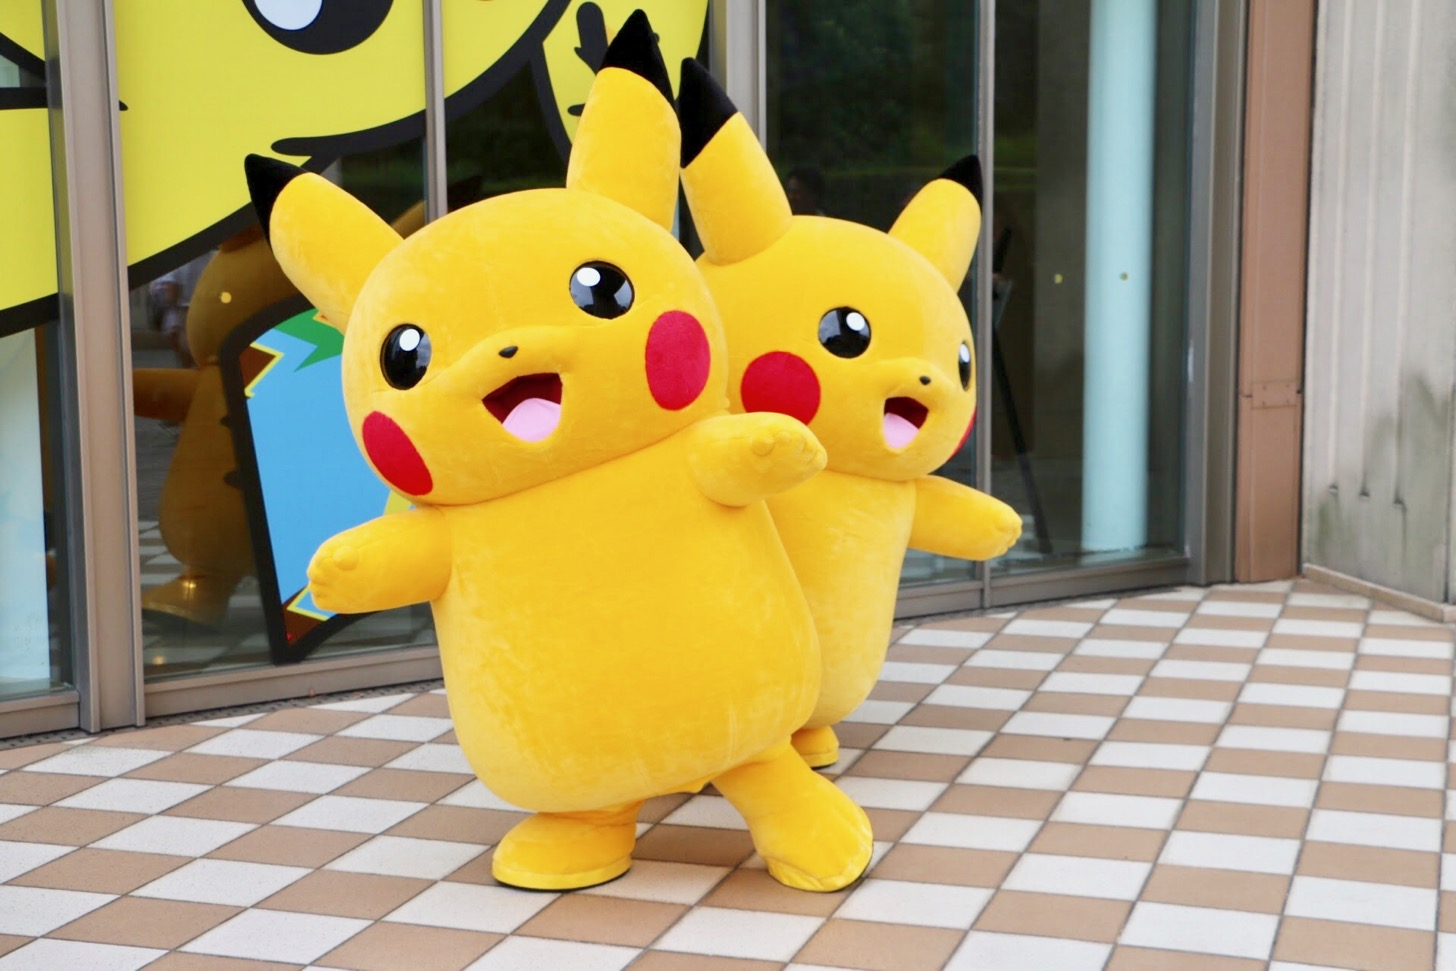 【Pokemon GO Park】 Barrado, Annone and many other rare Pokemon appearances! Poke GO fans across the country gathered and it was an error!